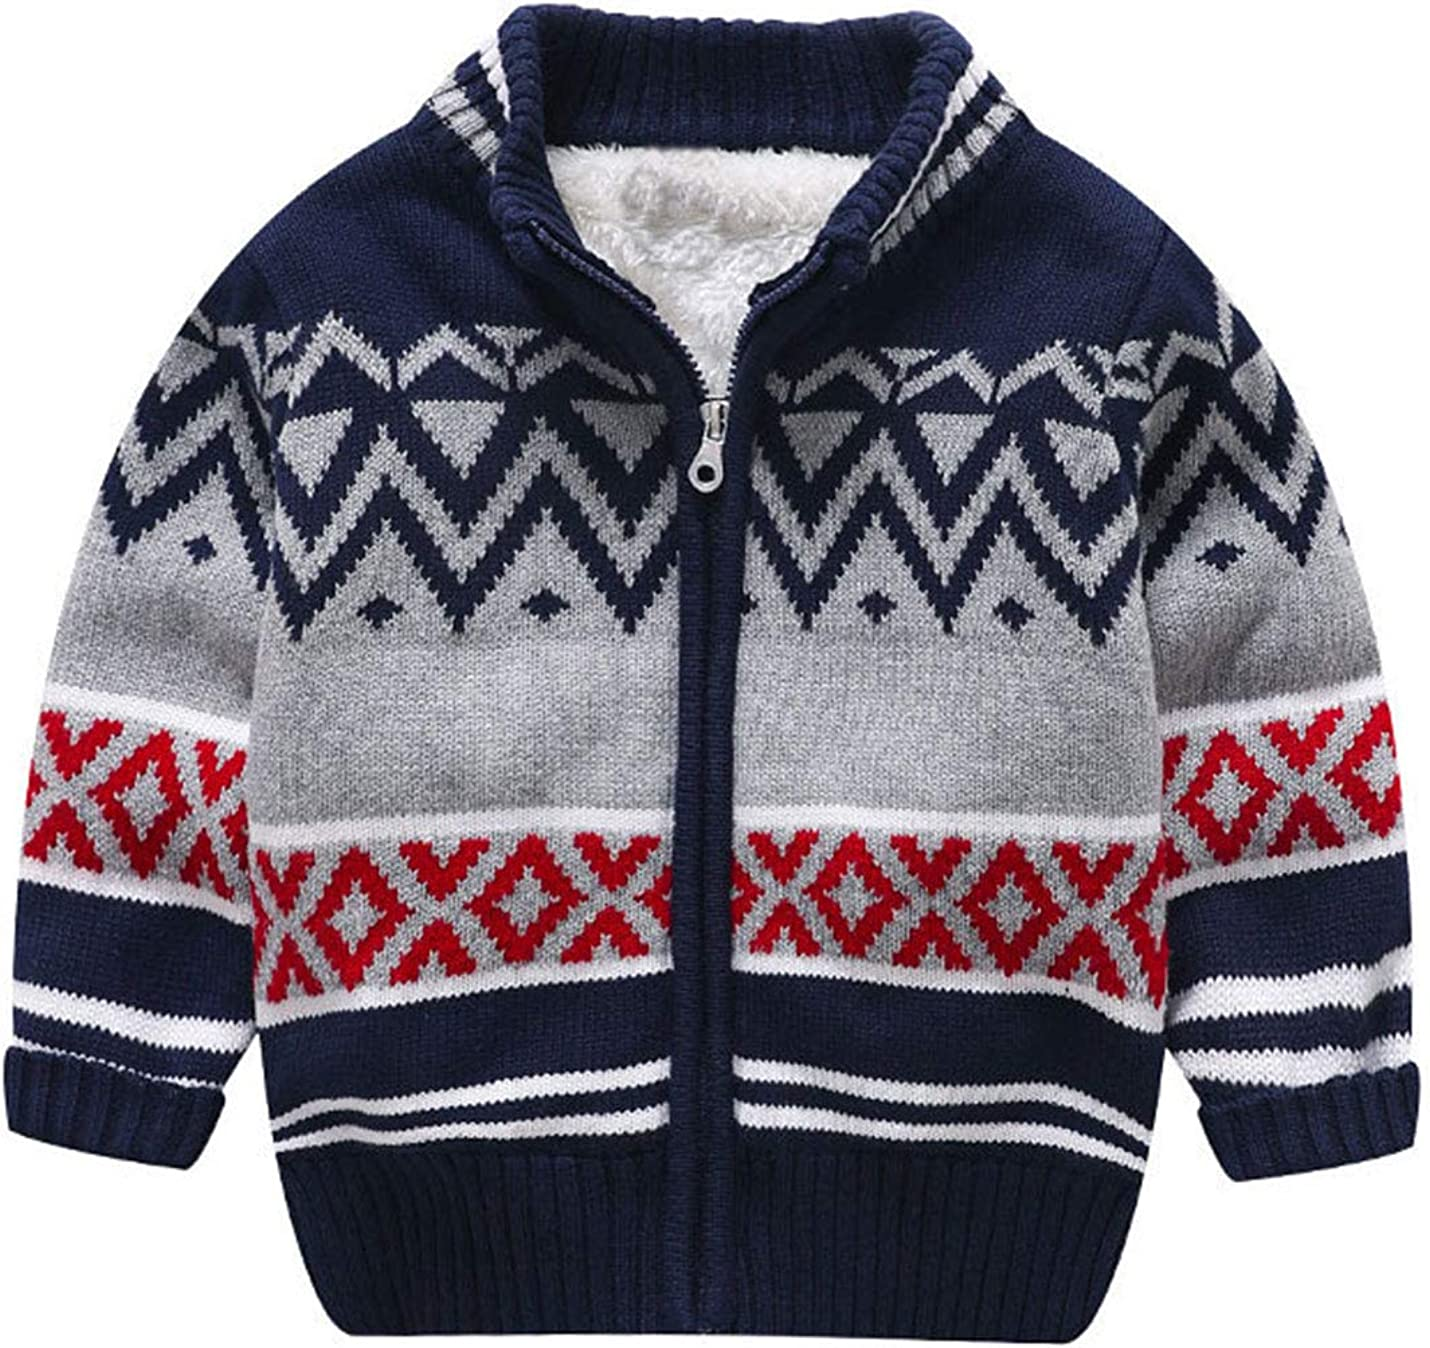 AMEBELLE Boy's Girl's Toddler Winter Chevron Sherpa Lined Knit Cardigan Sweater